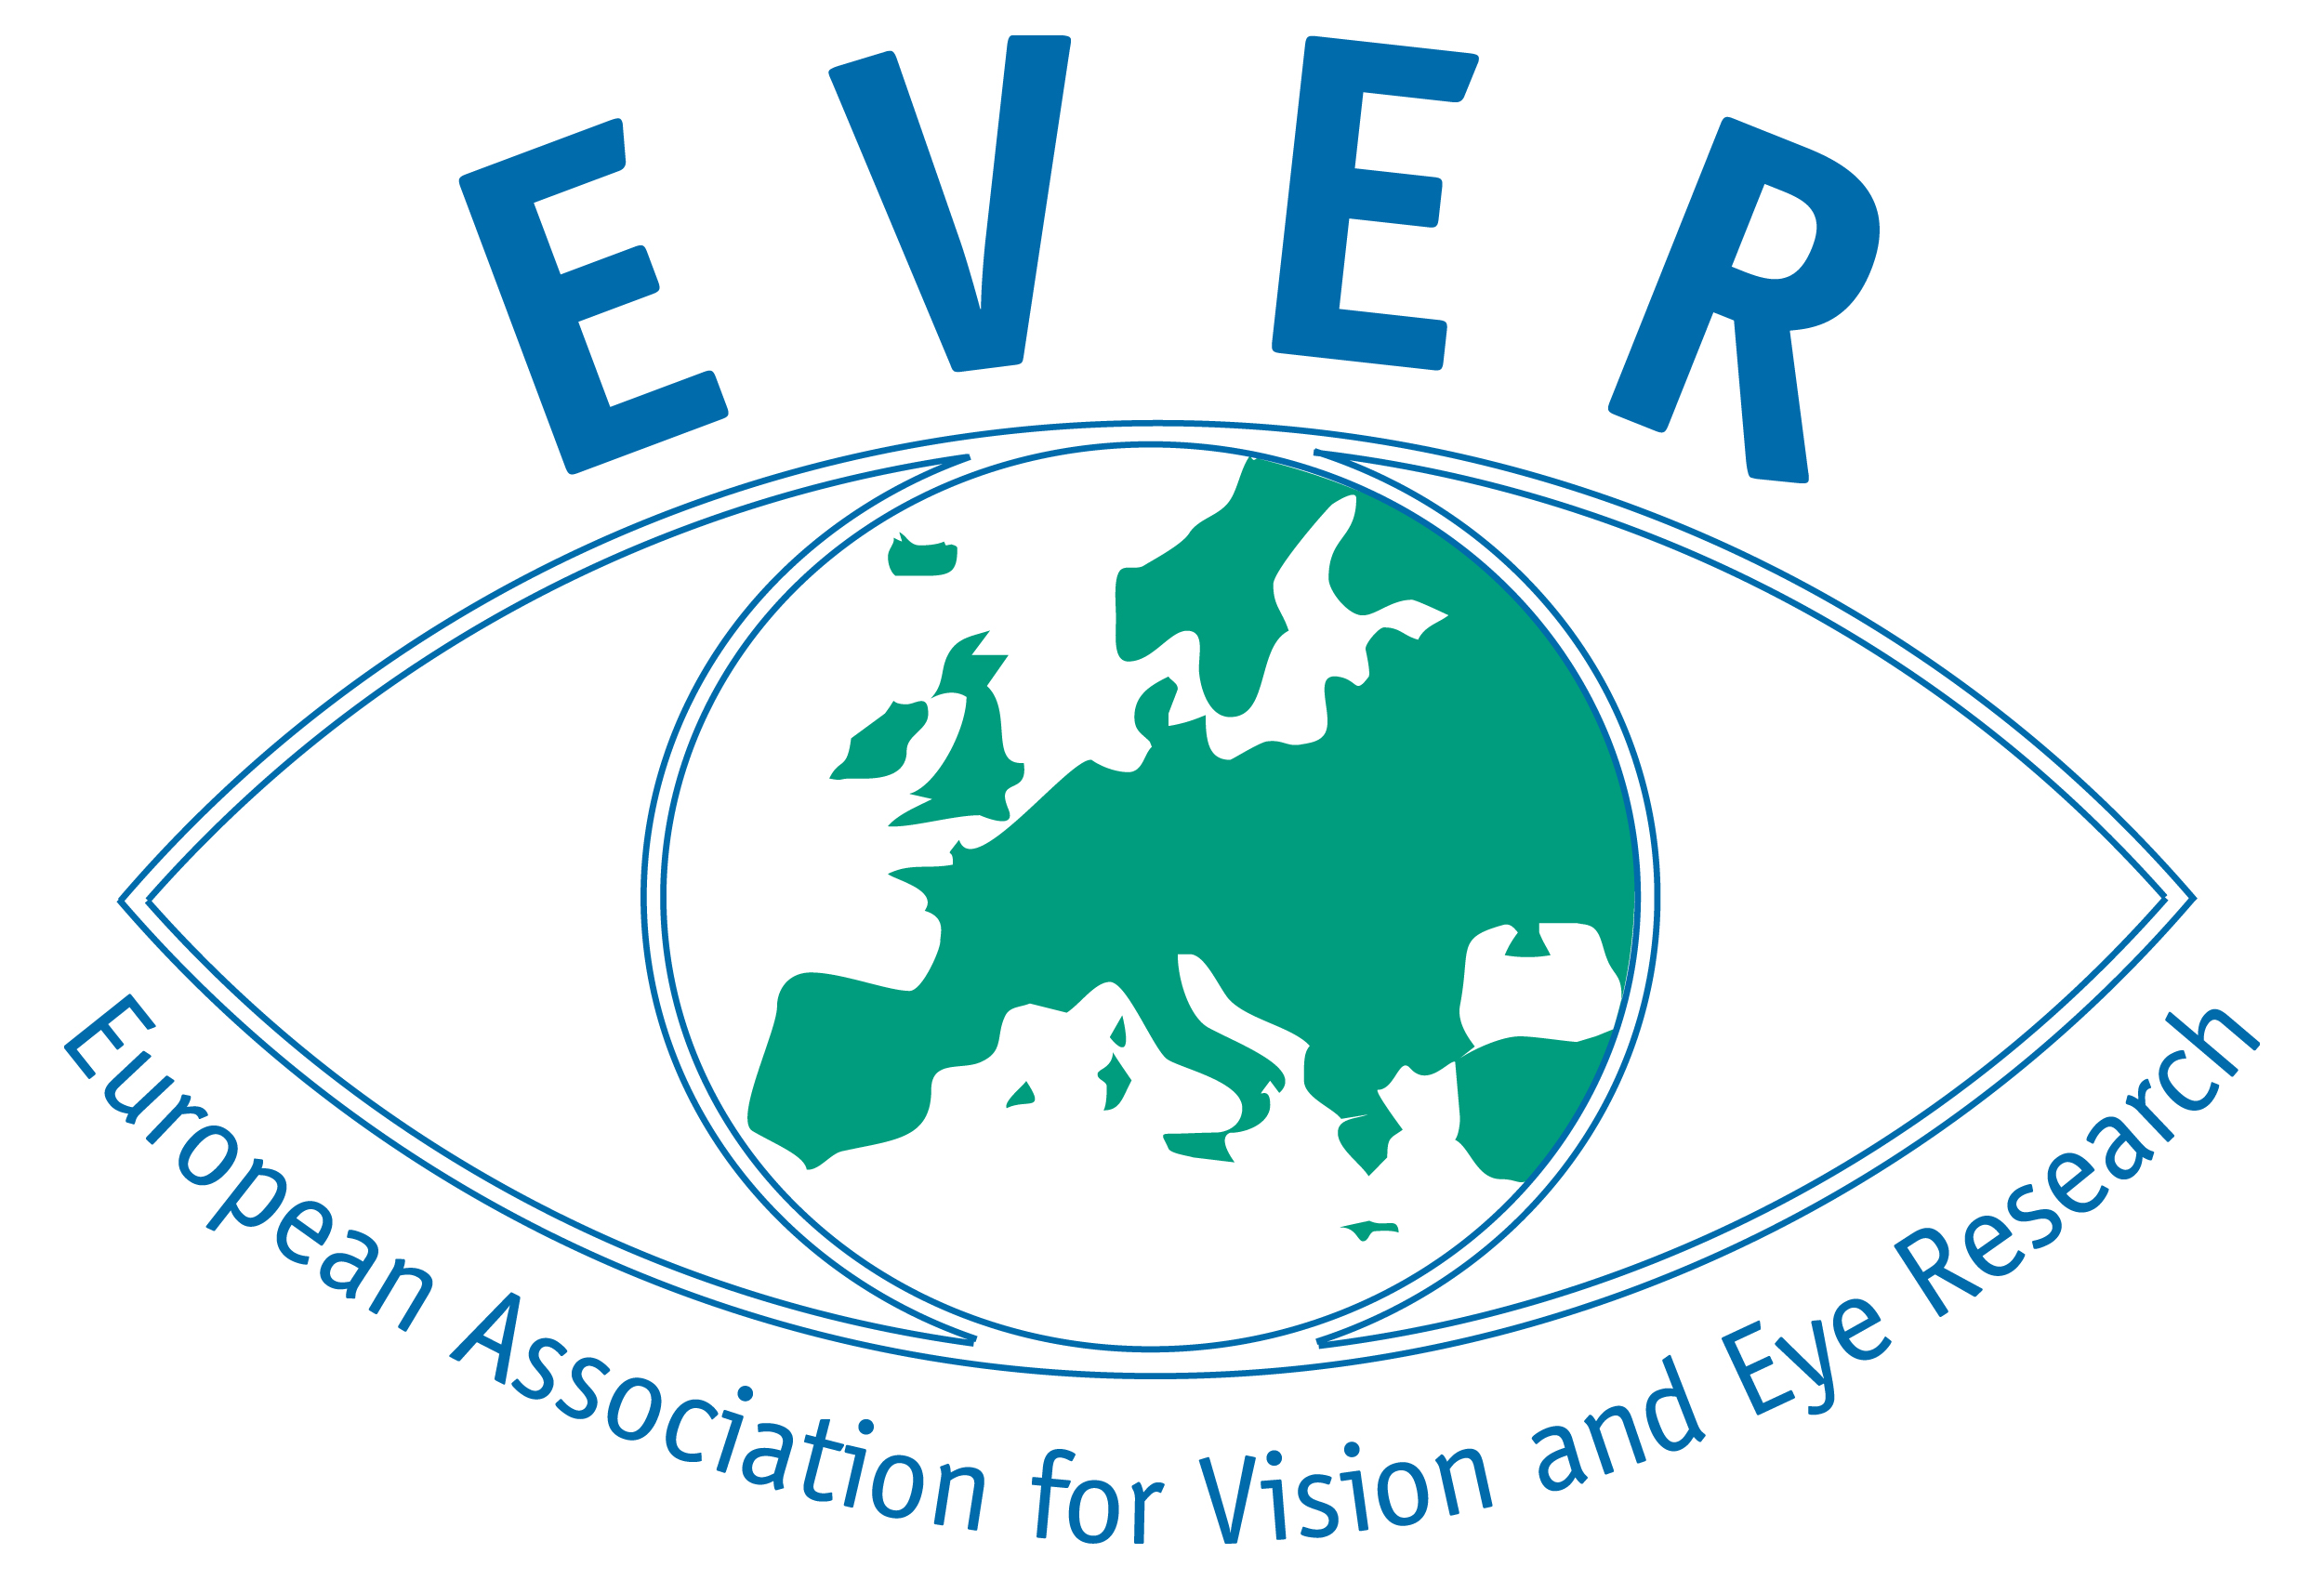 European Association for Vision and Eye Research (EVER)